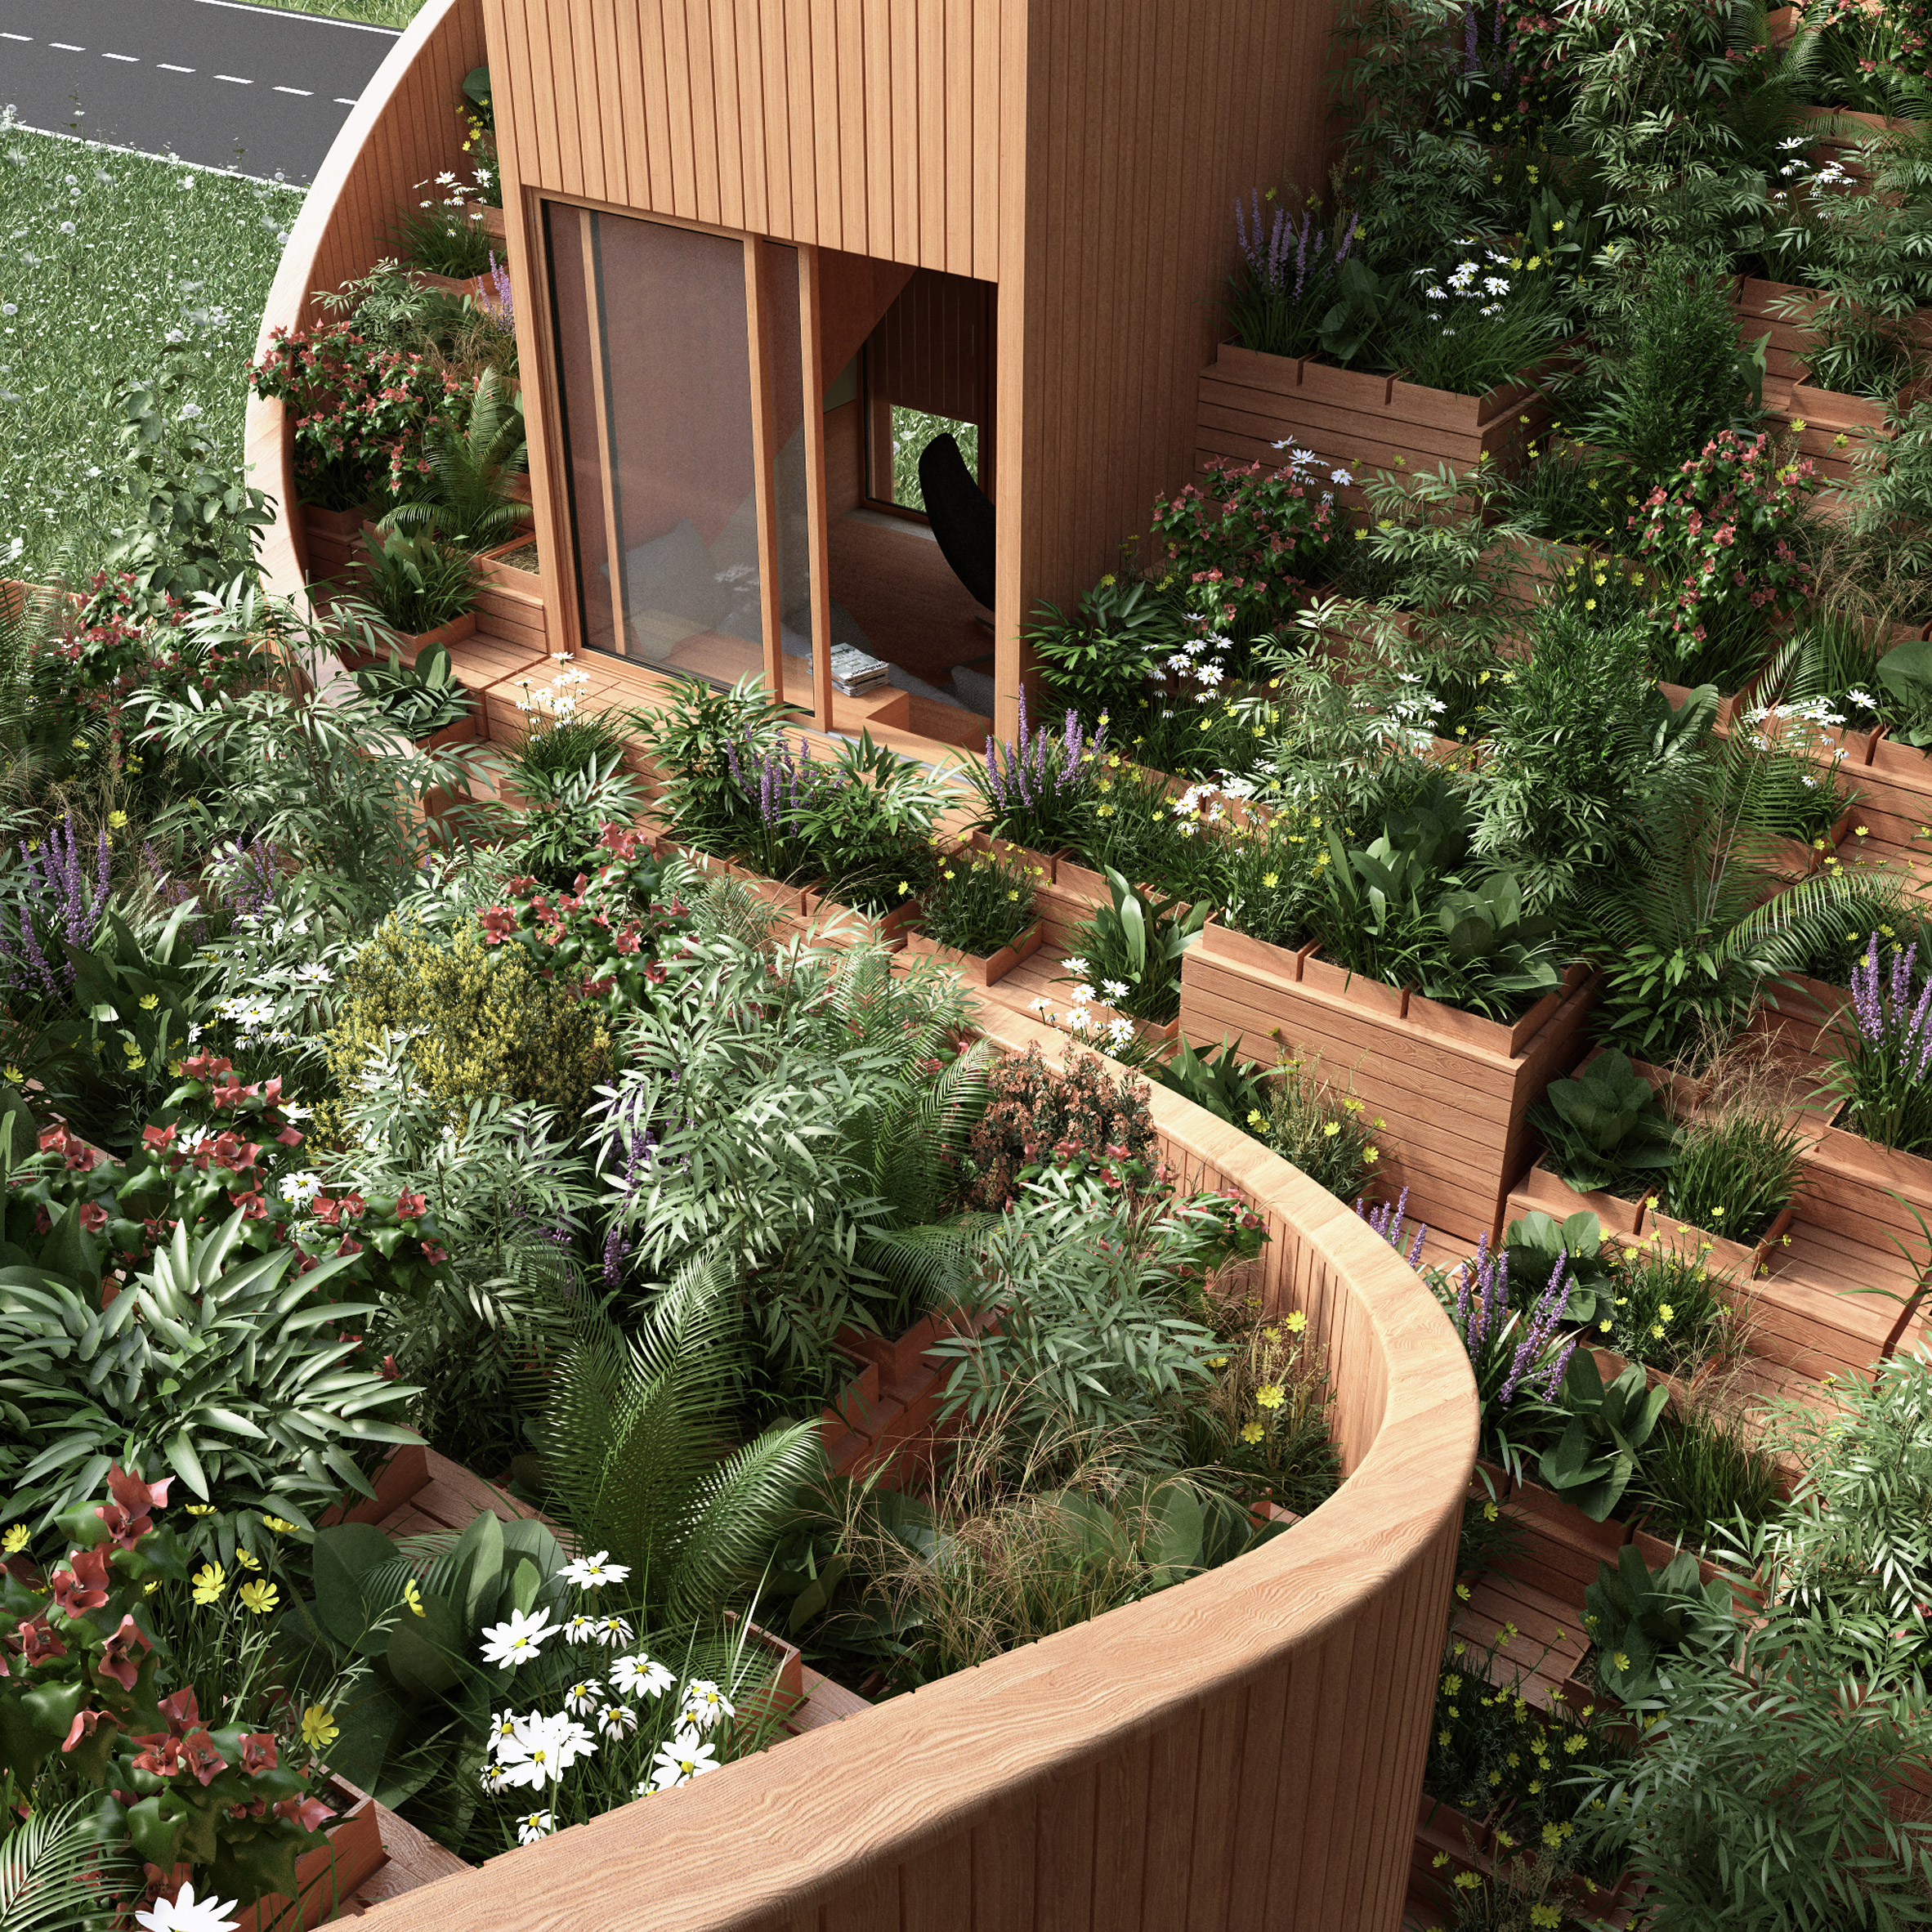 Self-sufficient Yin & Yang house incorporates gardens on its interlocking roof